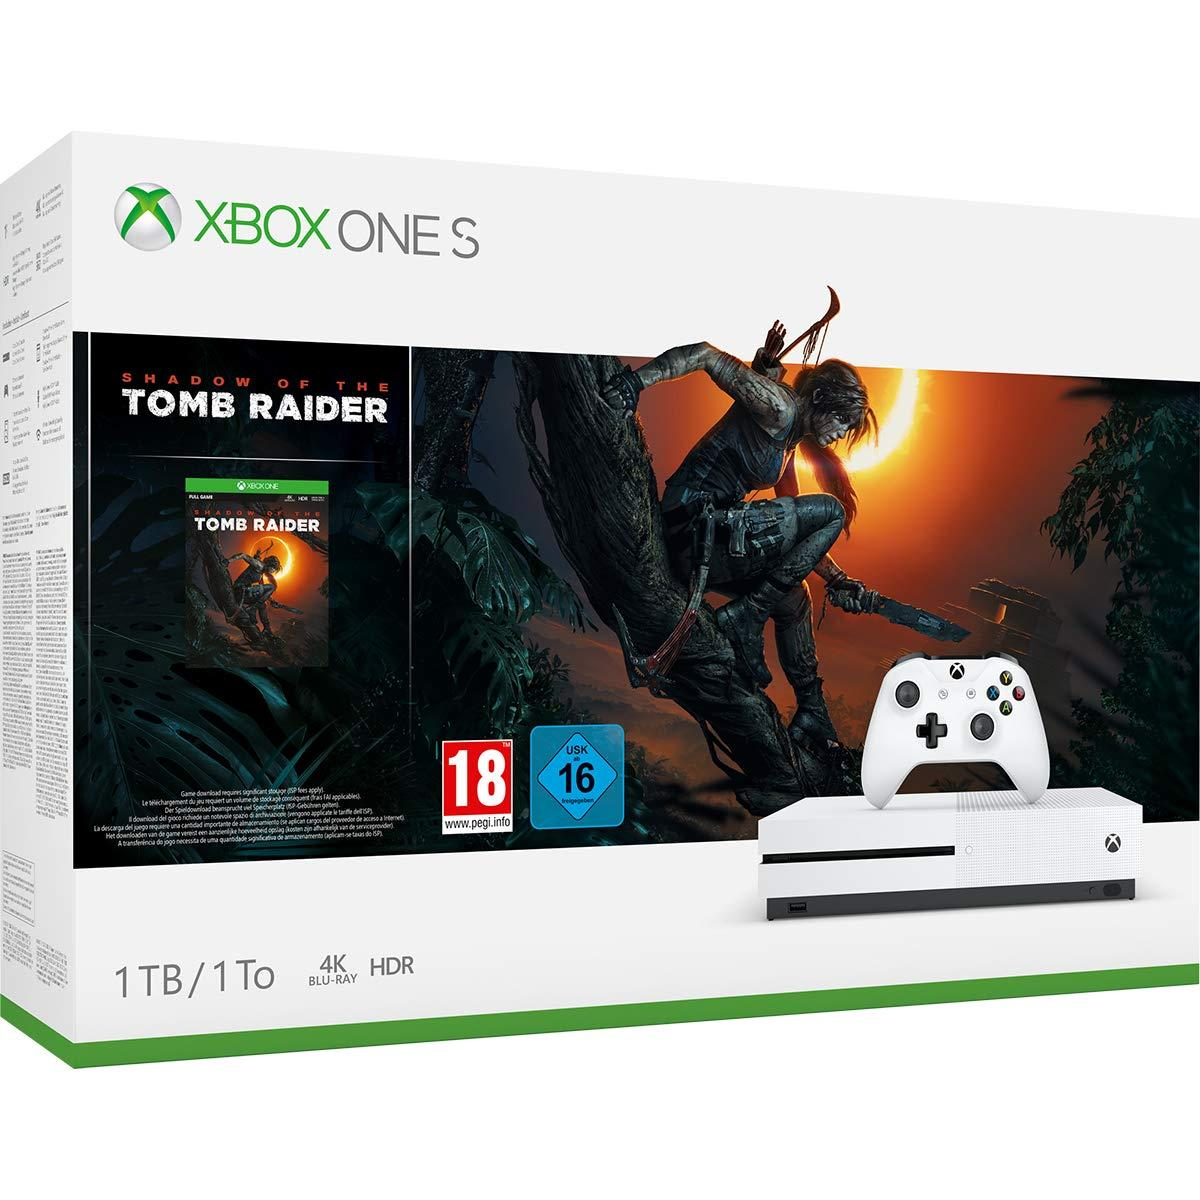 Игровая консоль Microsoft Xbox ONE S 1TB + Shadow of Tomb Raider